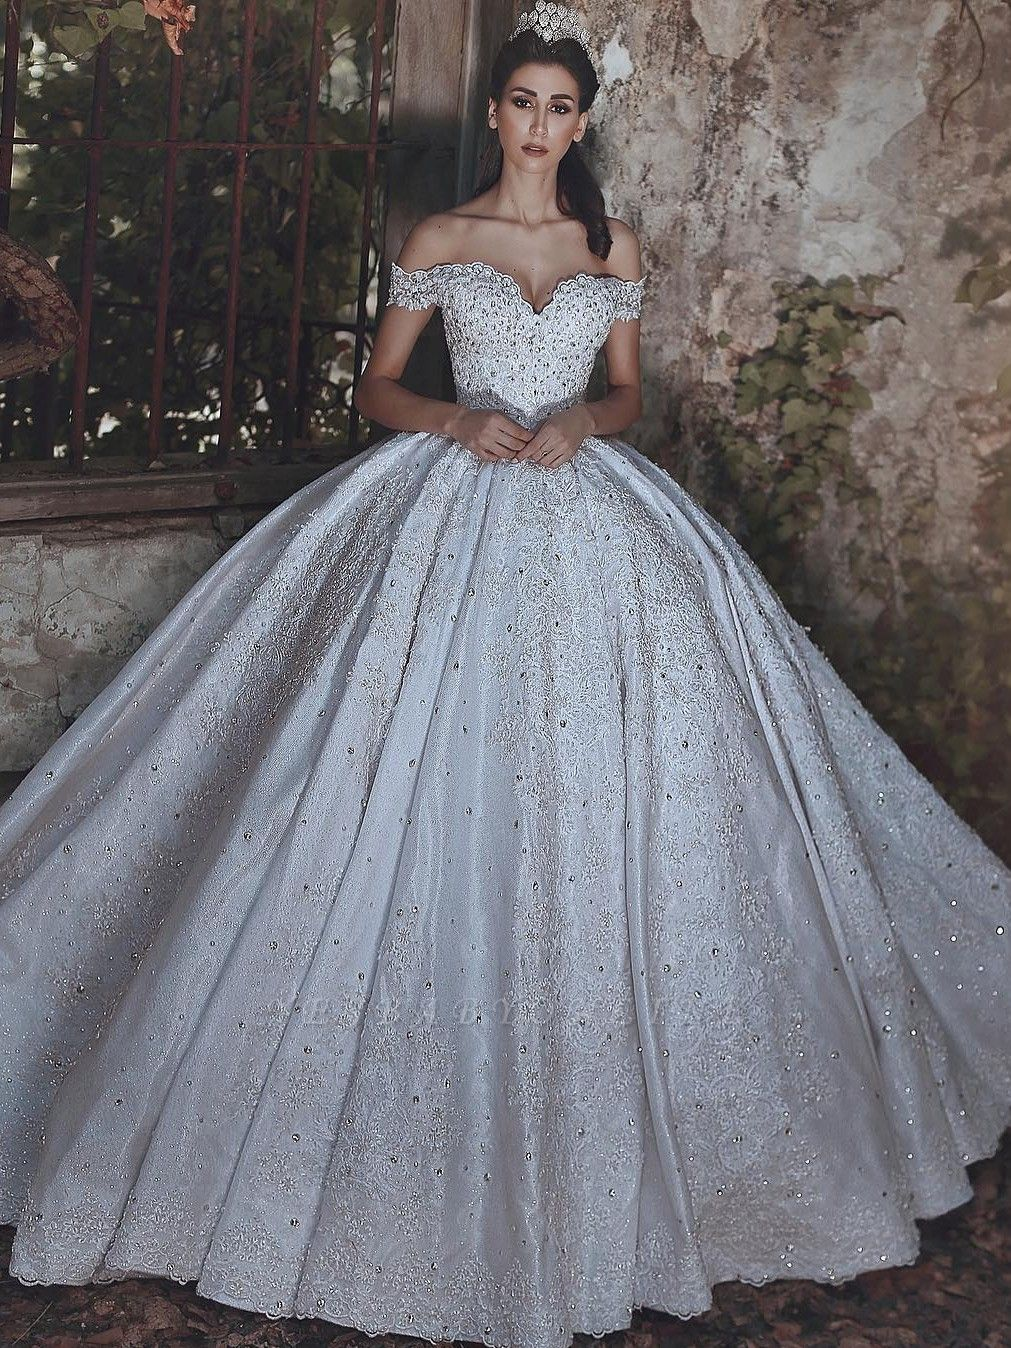 Lace-Applique Charming Beaded Princess Ball Gown Off-The-Shoulder Wedding Dresses